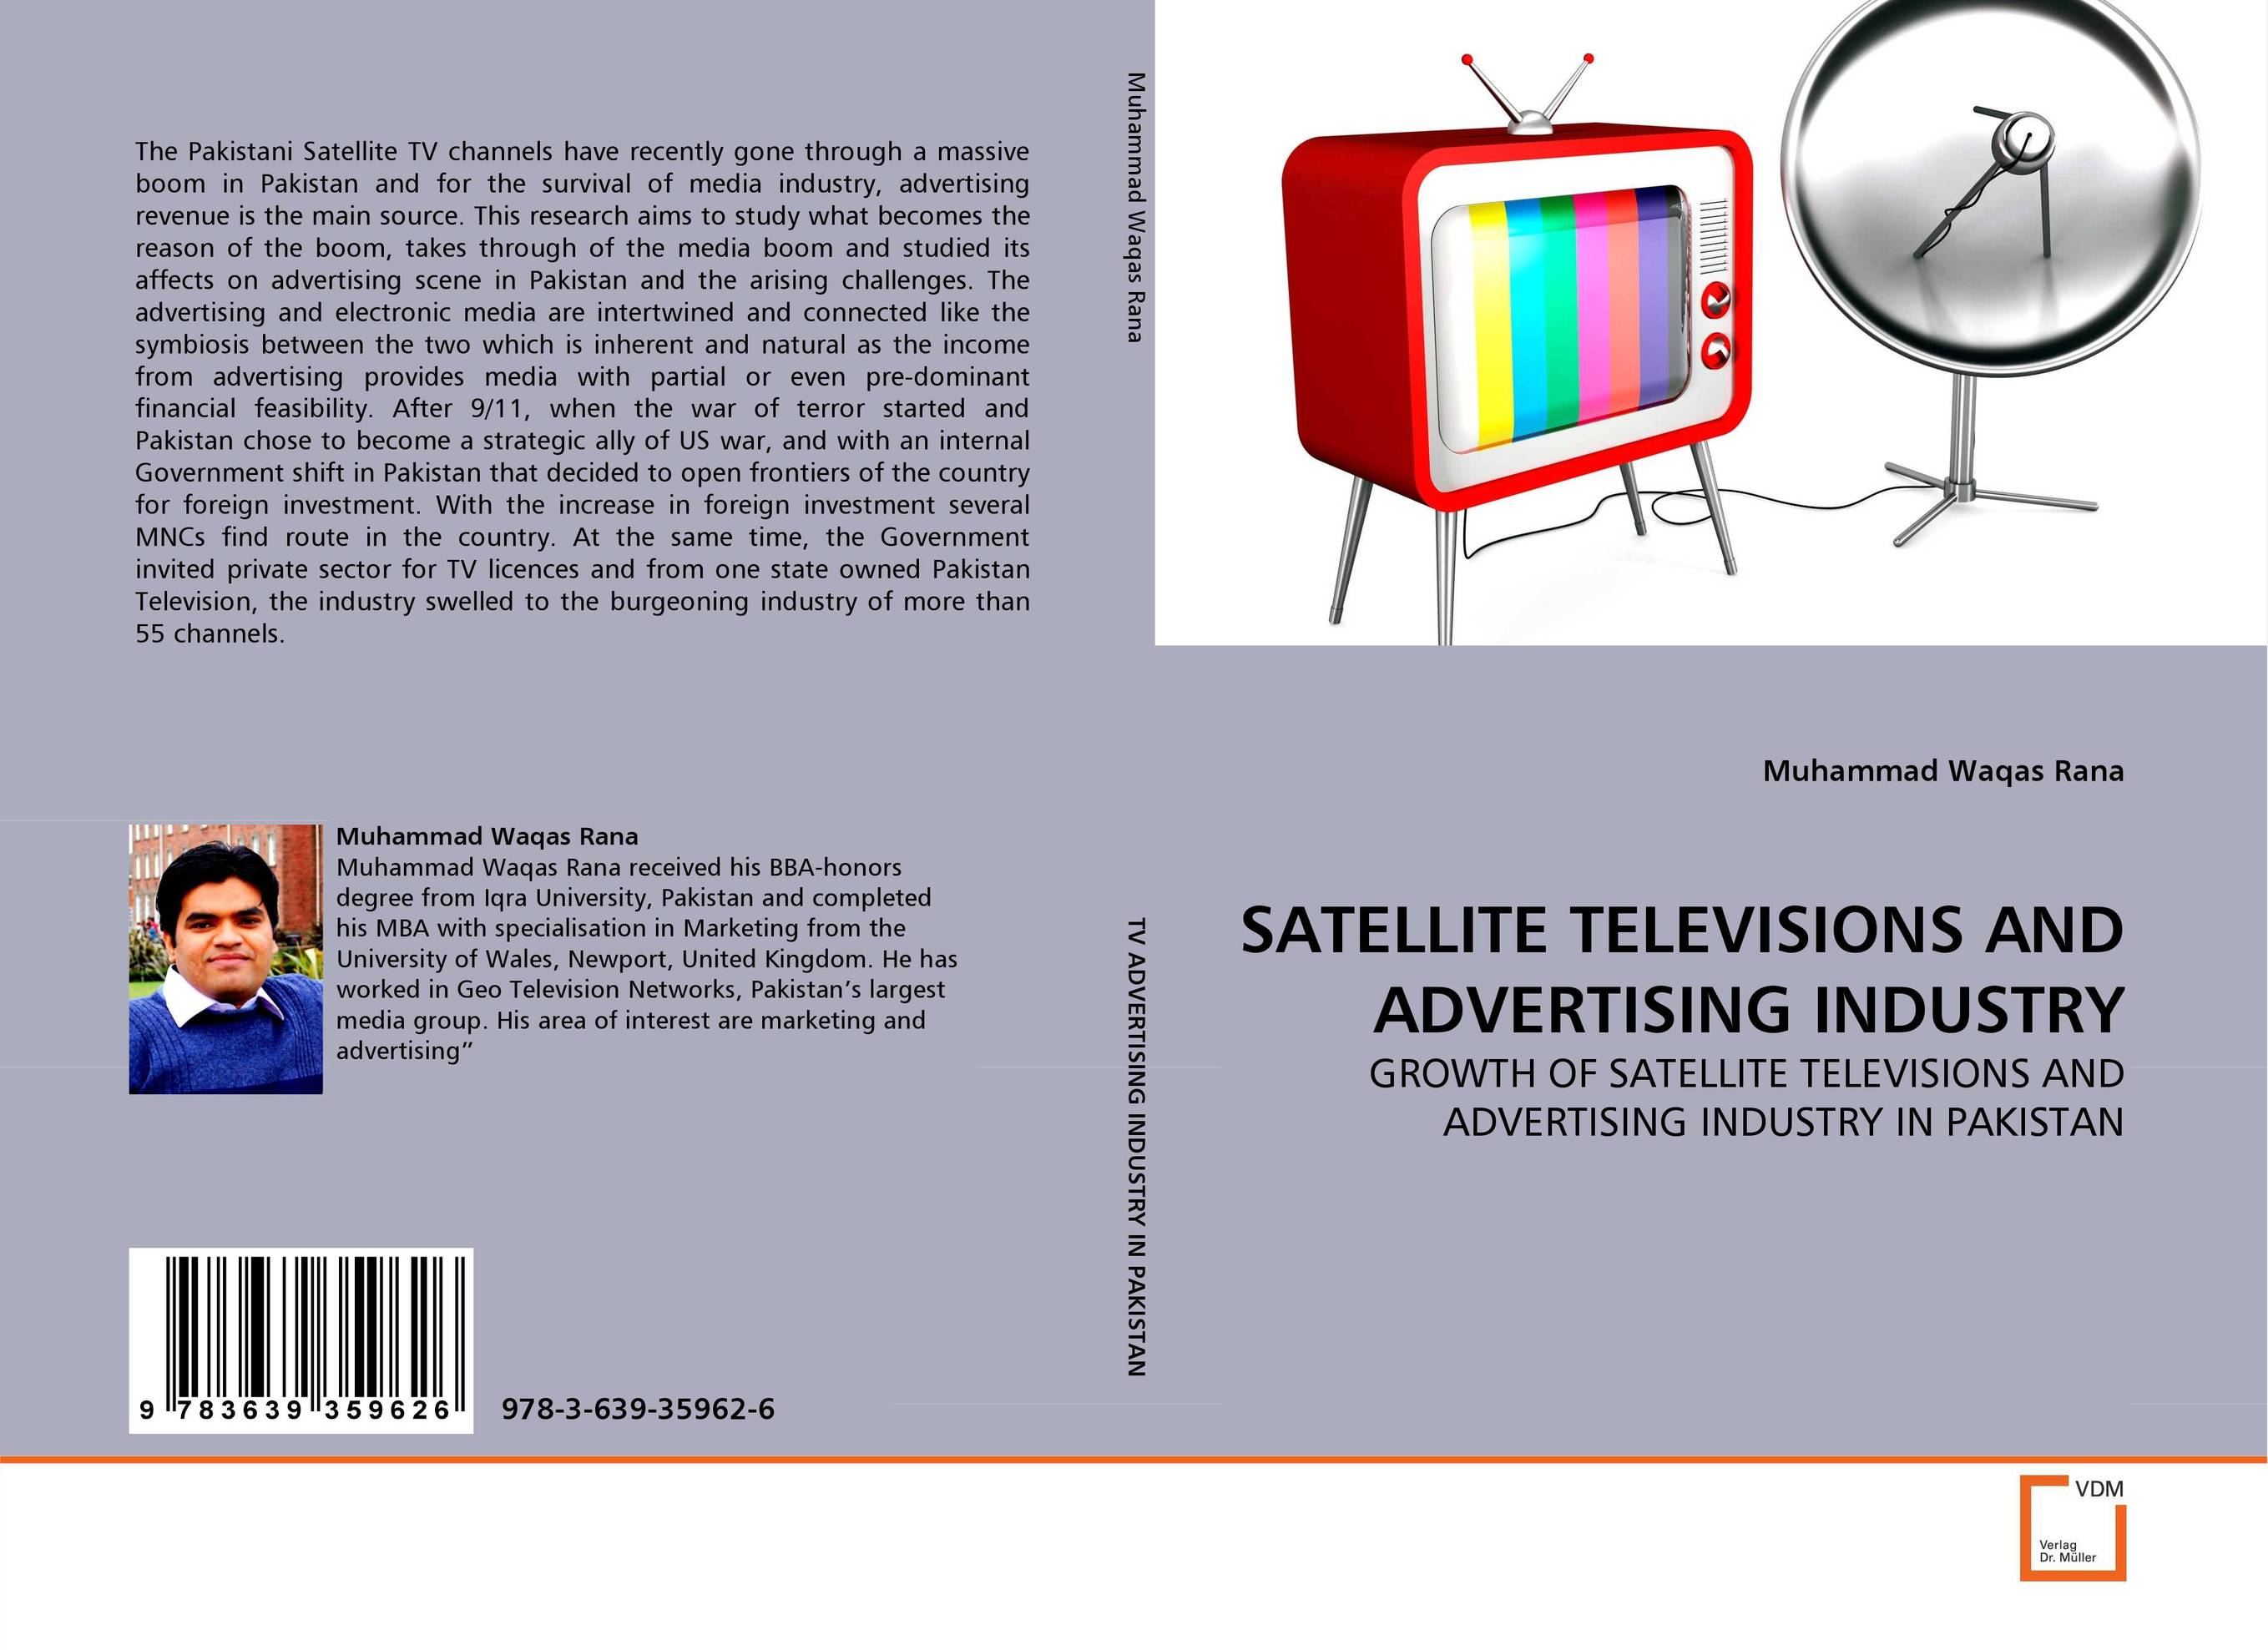 SATELLITE TELEVISIONS AND ADVERTISING INDUSTRY foreign aid and social sector of pakistan